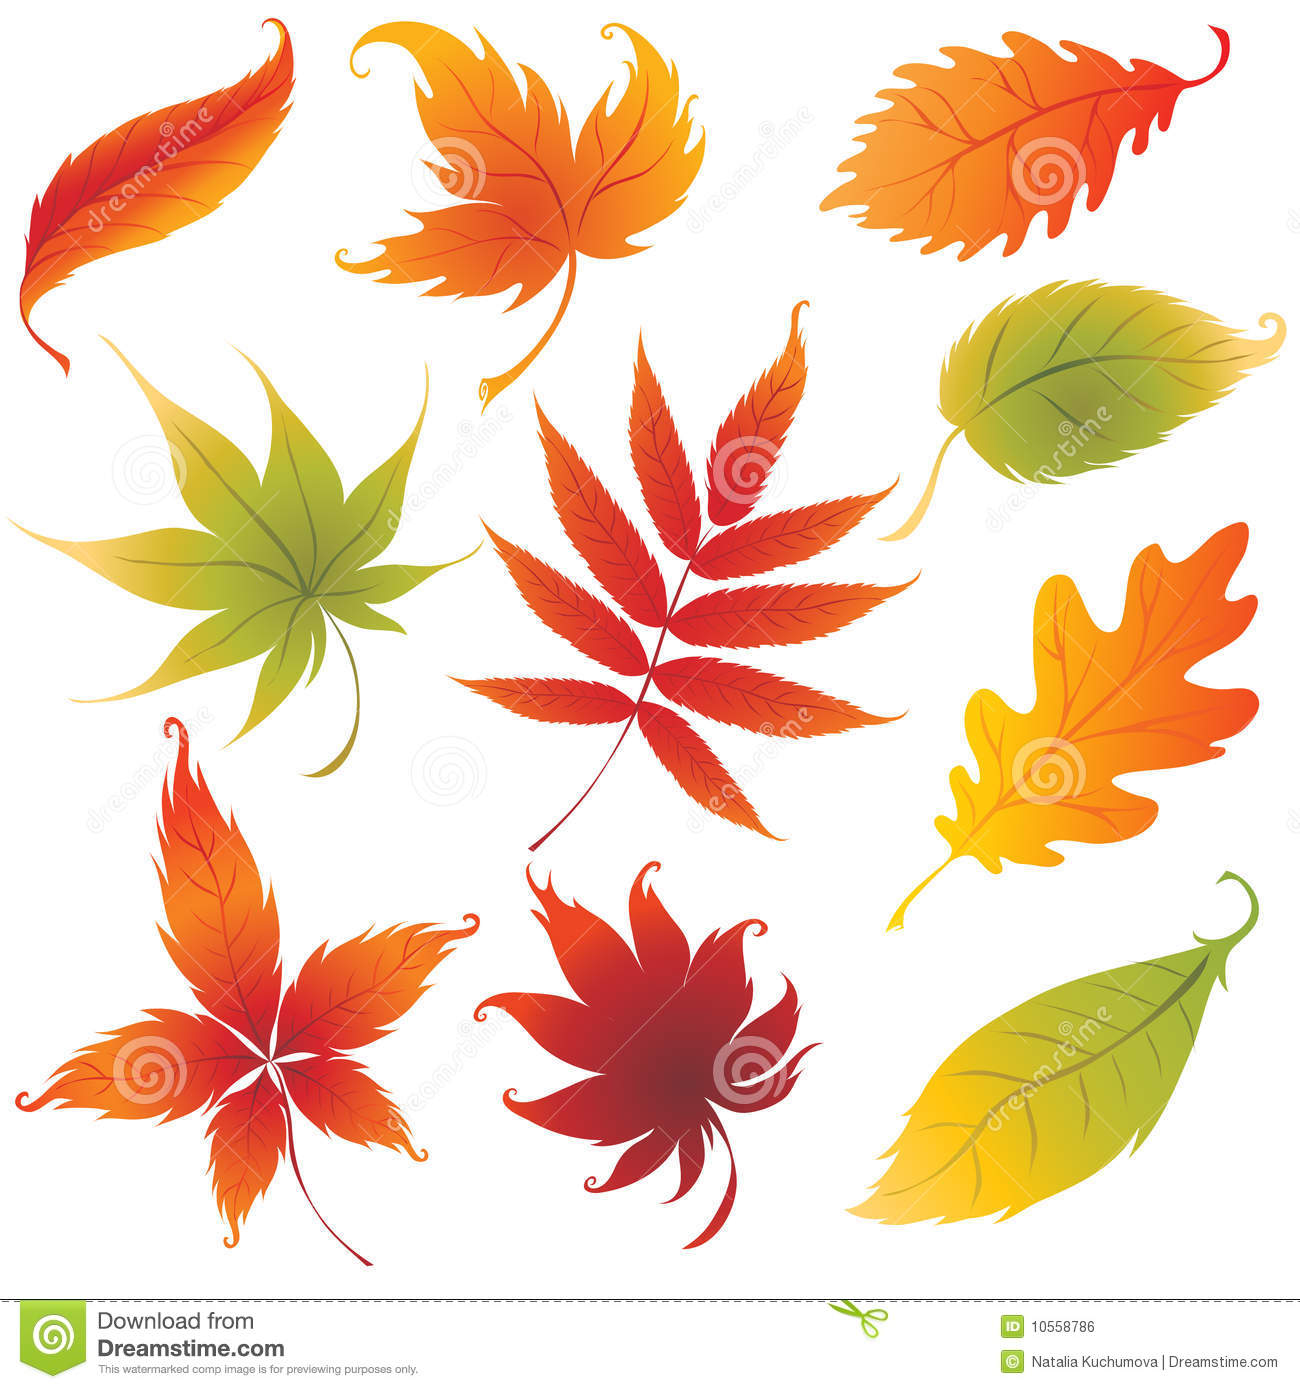 Real Leaves Design Backgrounds - Nature - PPT Backgrounds